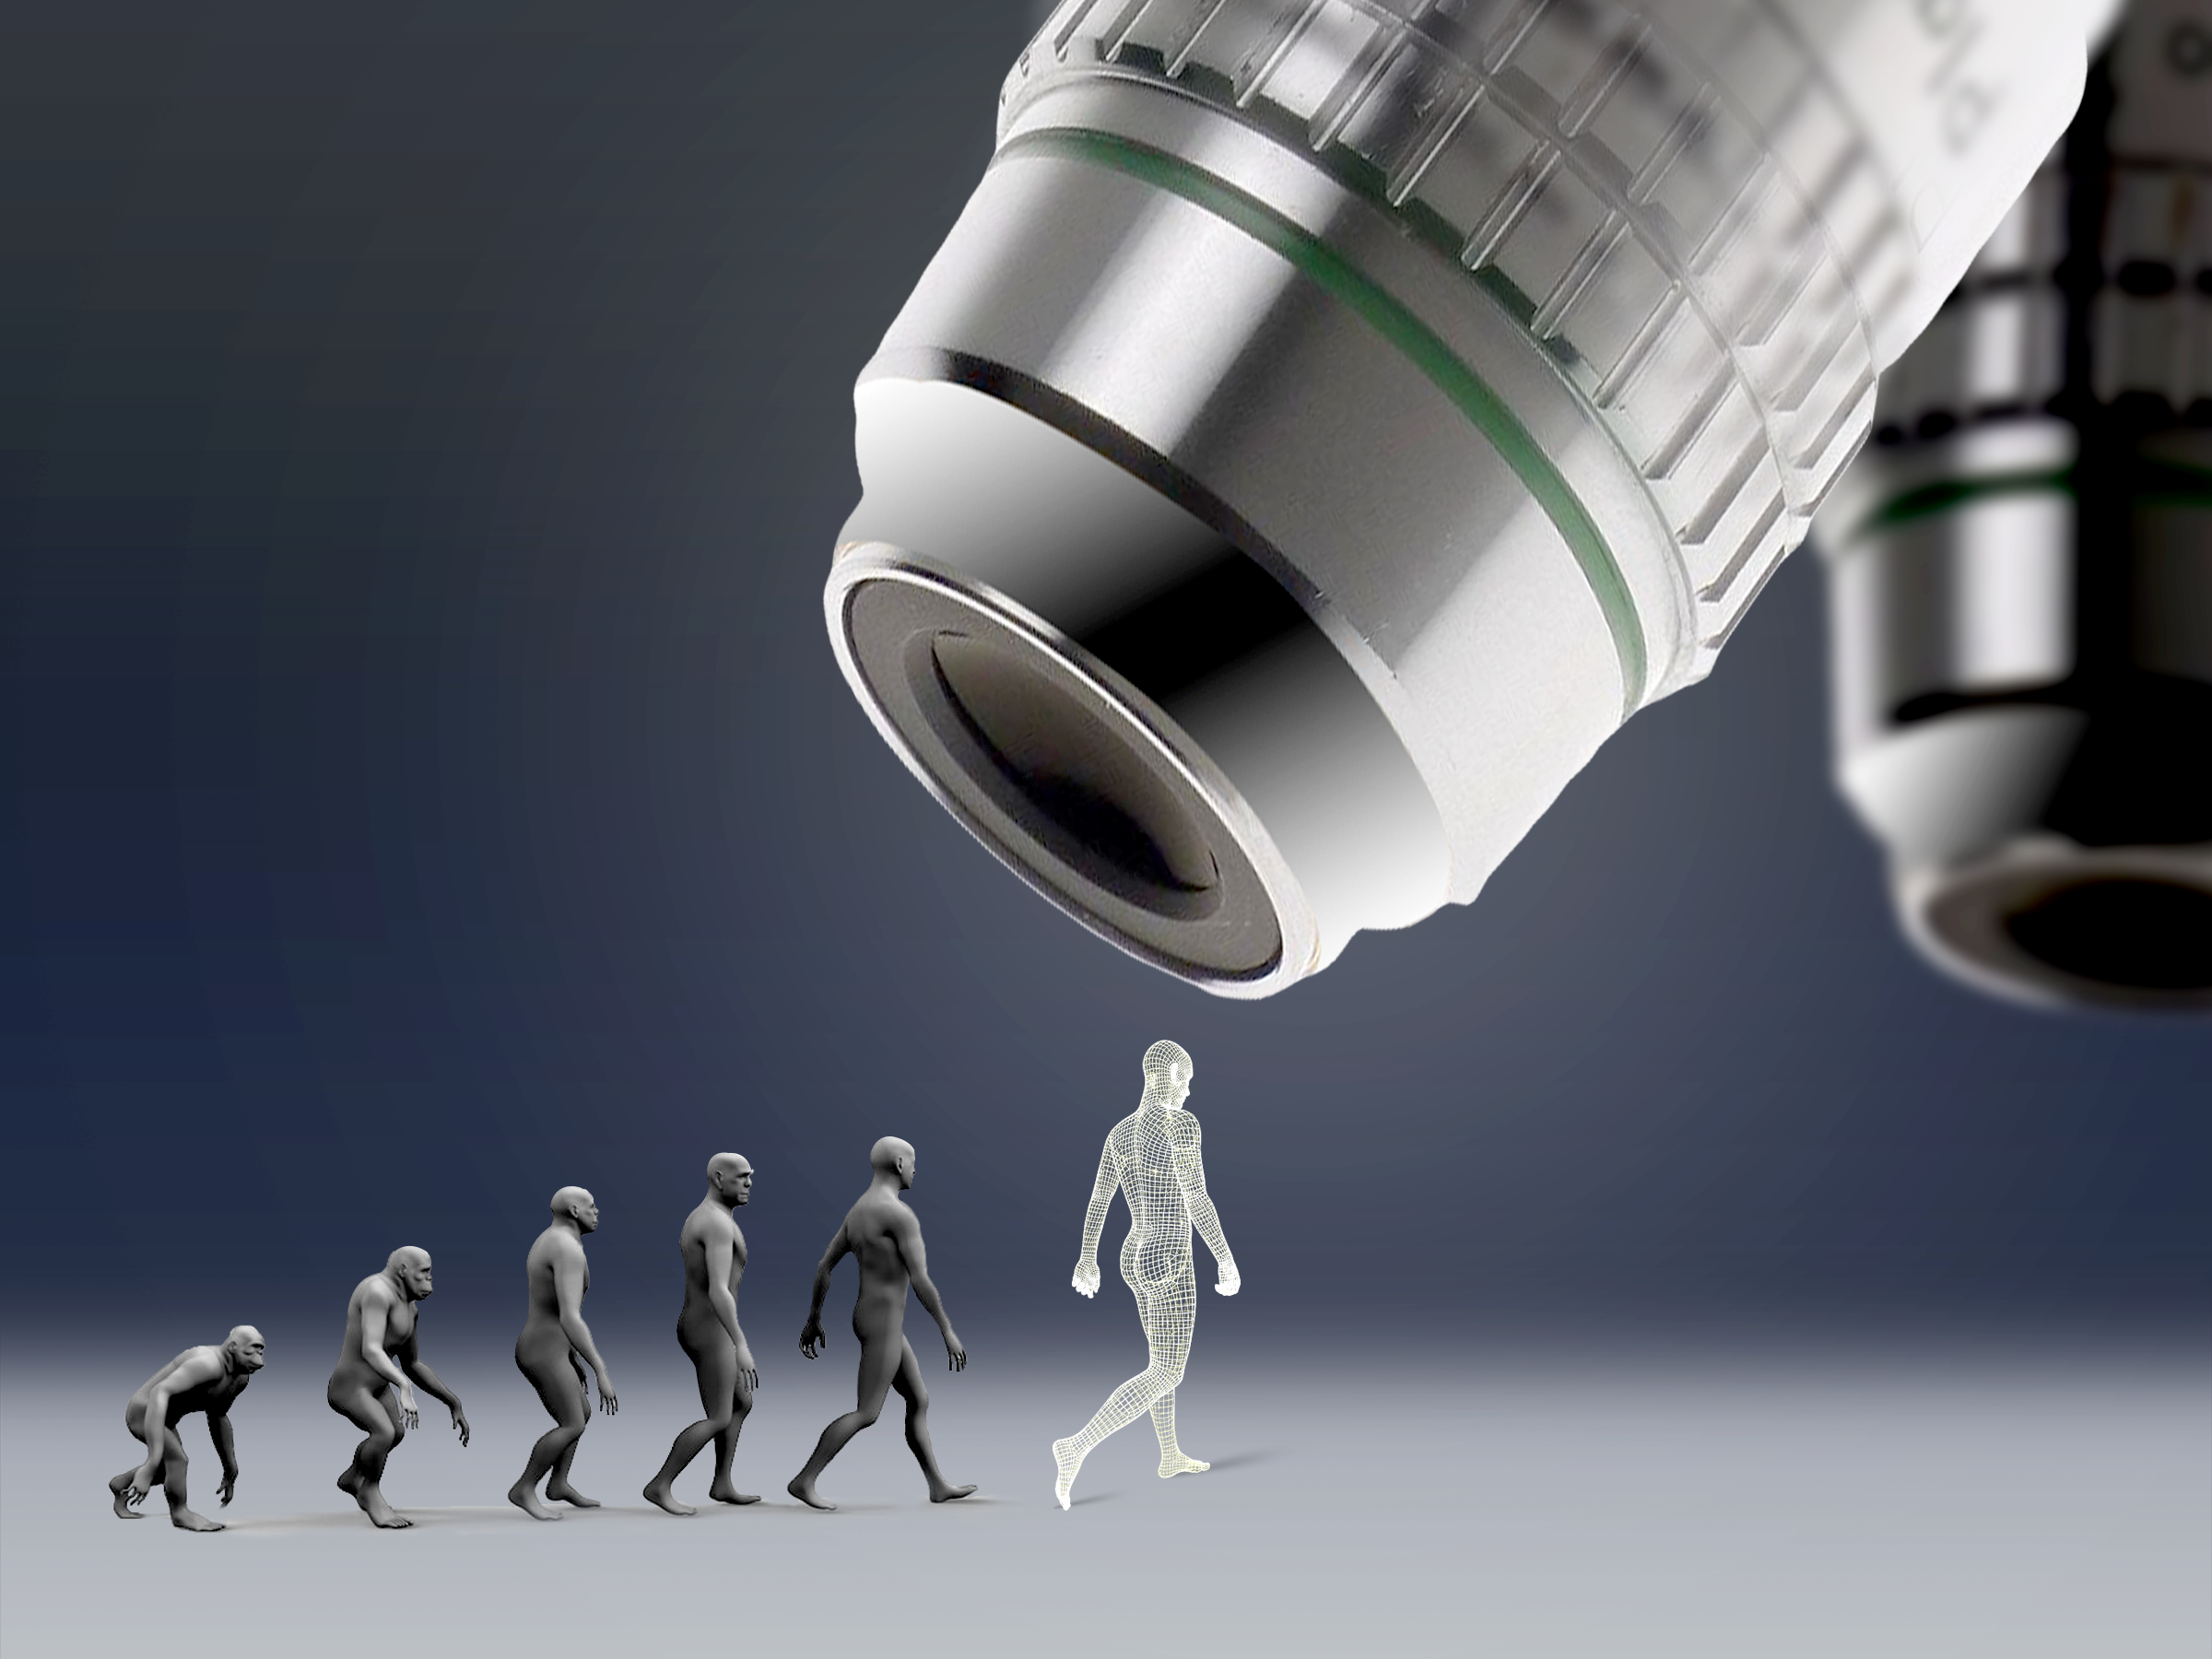 Human evolution microscope